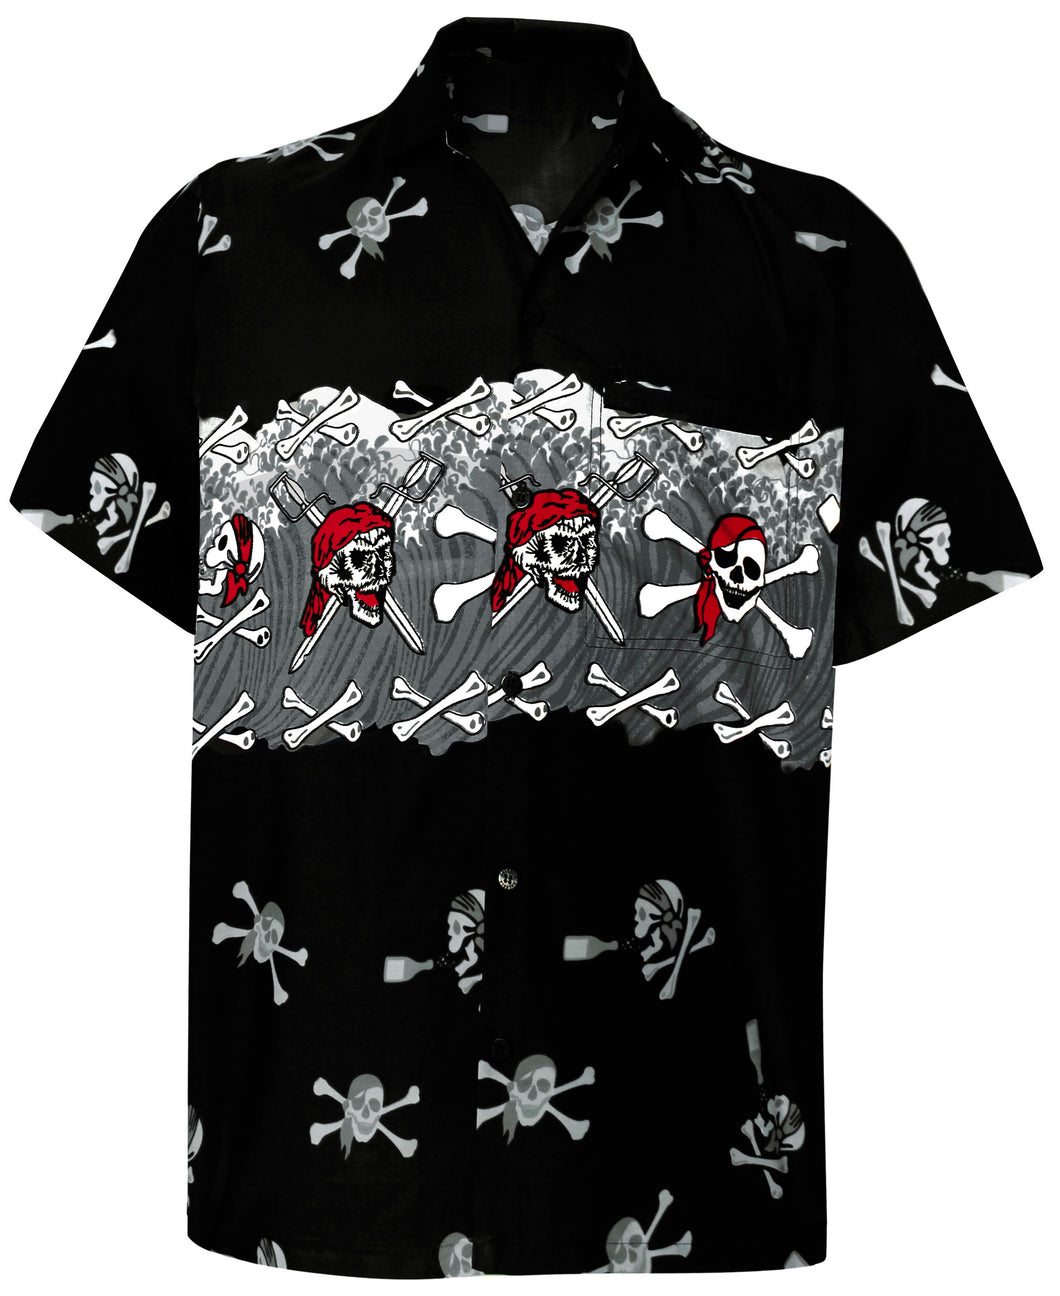 LA LEELA Men Casual Beach hawaiian Shirt Aloha Tropical Beach front Pocket Short sleeve Hawaii Black